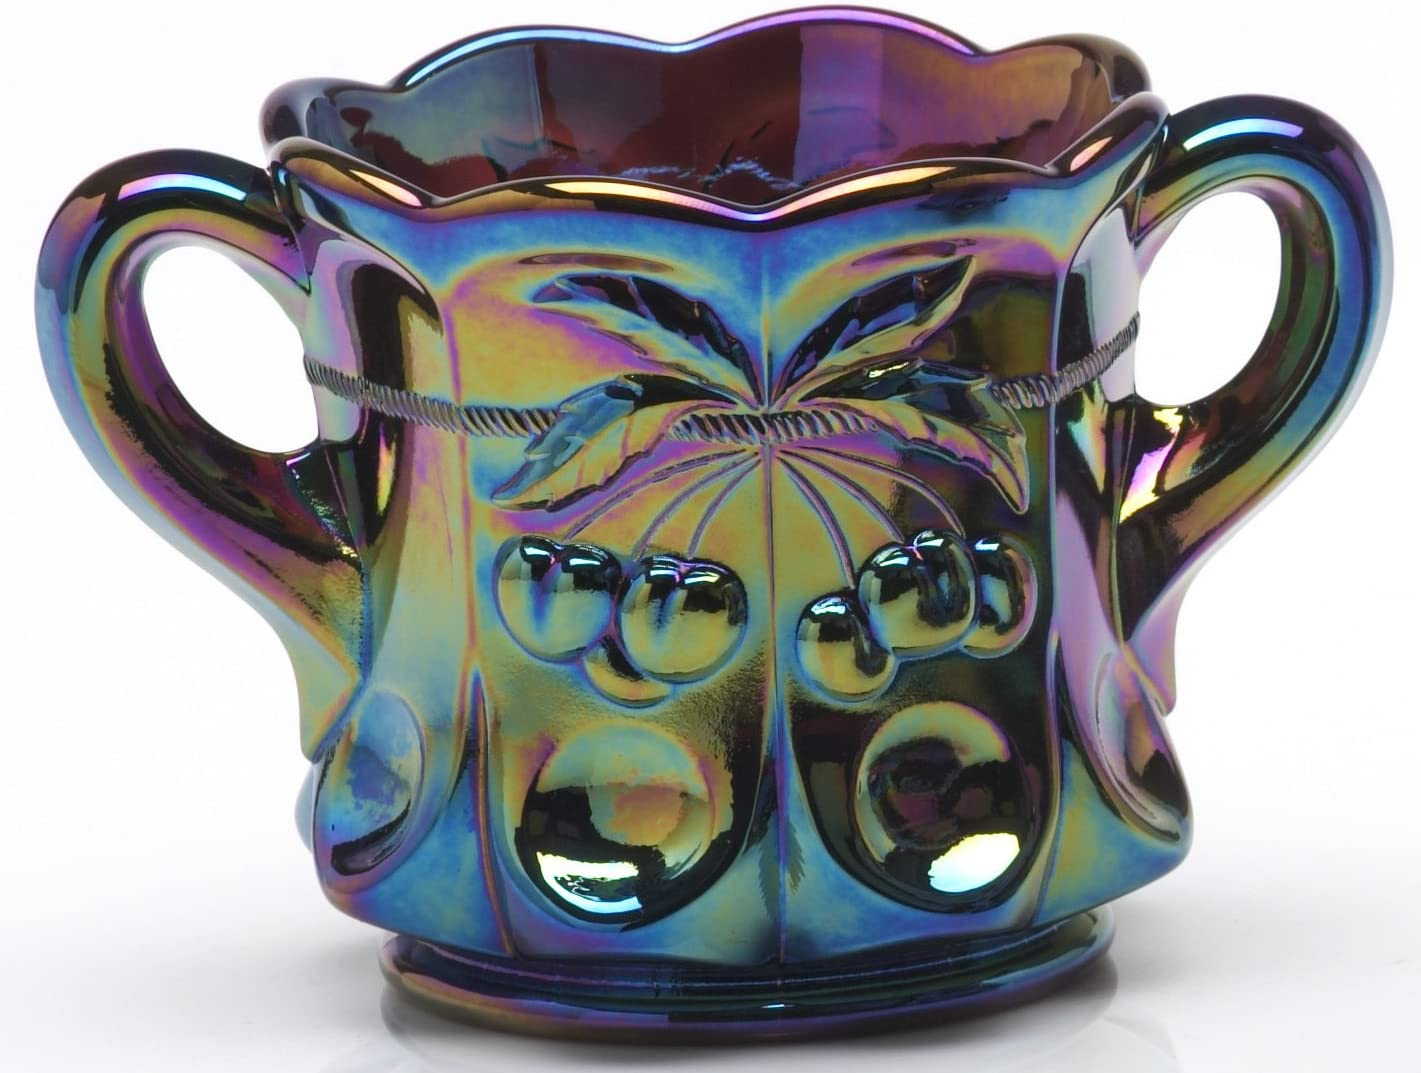 Sale SALE% OFF Sugar Bowl Many popular brands - Cherry Cable Pattern USA Glass Black Am Mosser